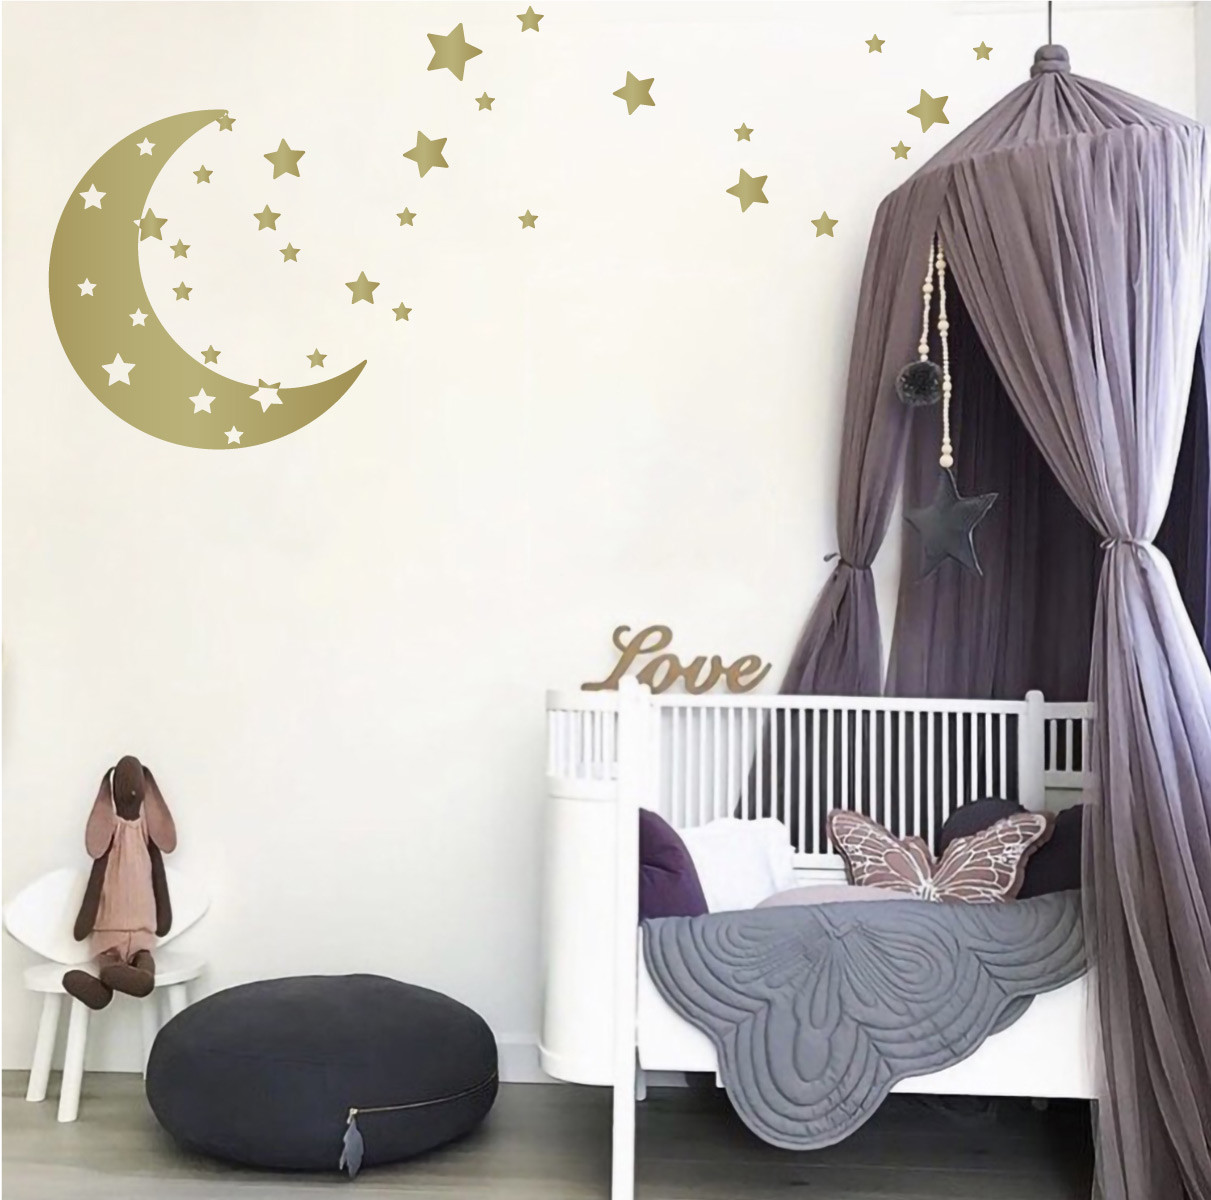 Moon Stars Nursery Wall Decals Removable Wall Decor Stickers For Boys Or Girls Kids Room